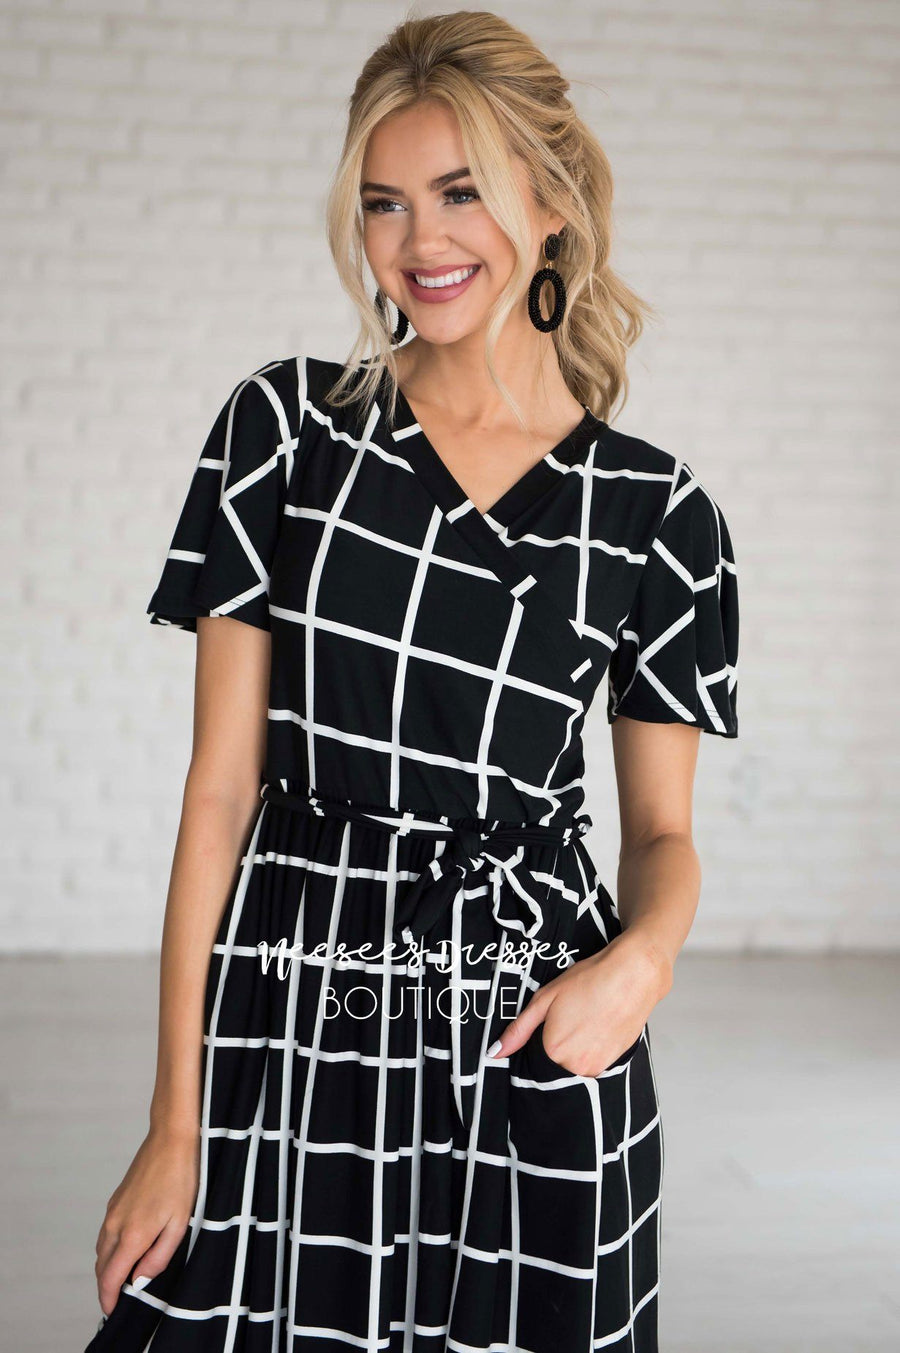 The Moxie Grid Print Dress